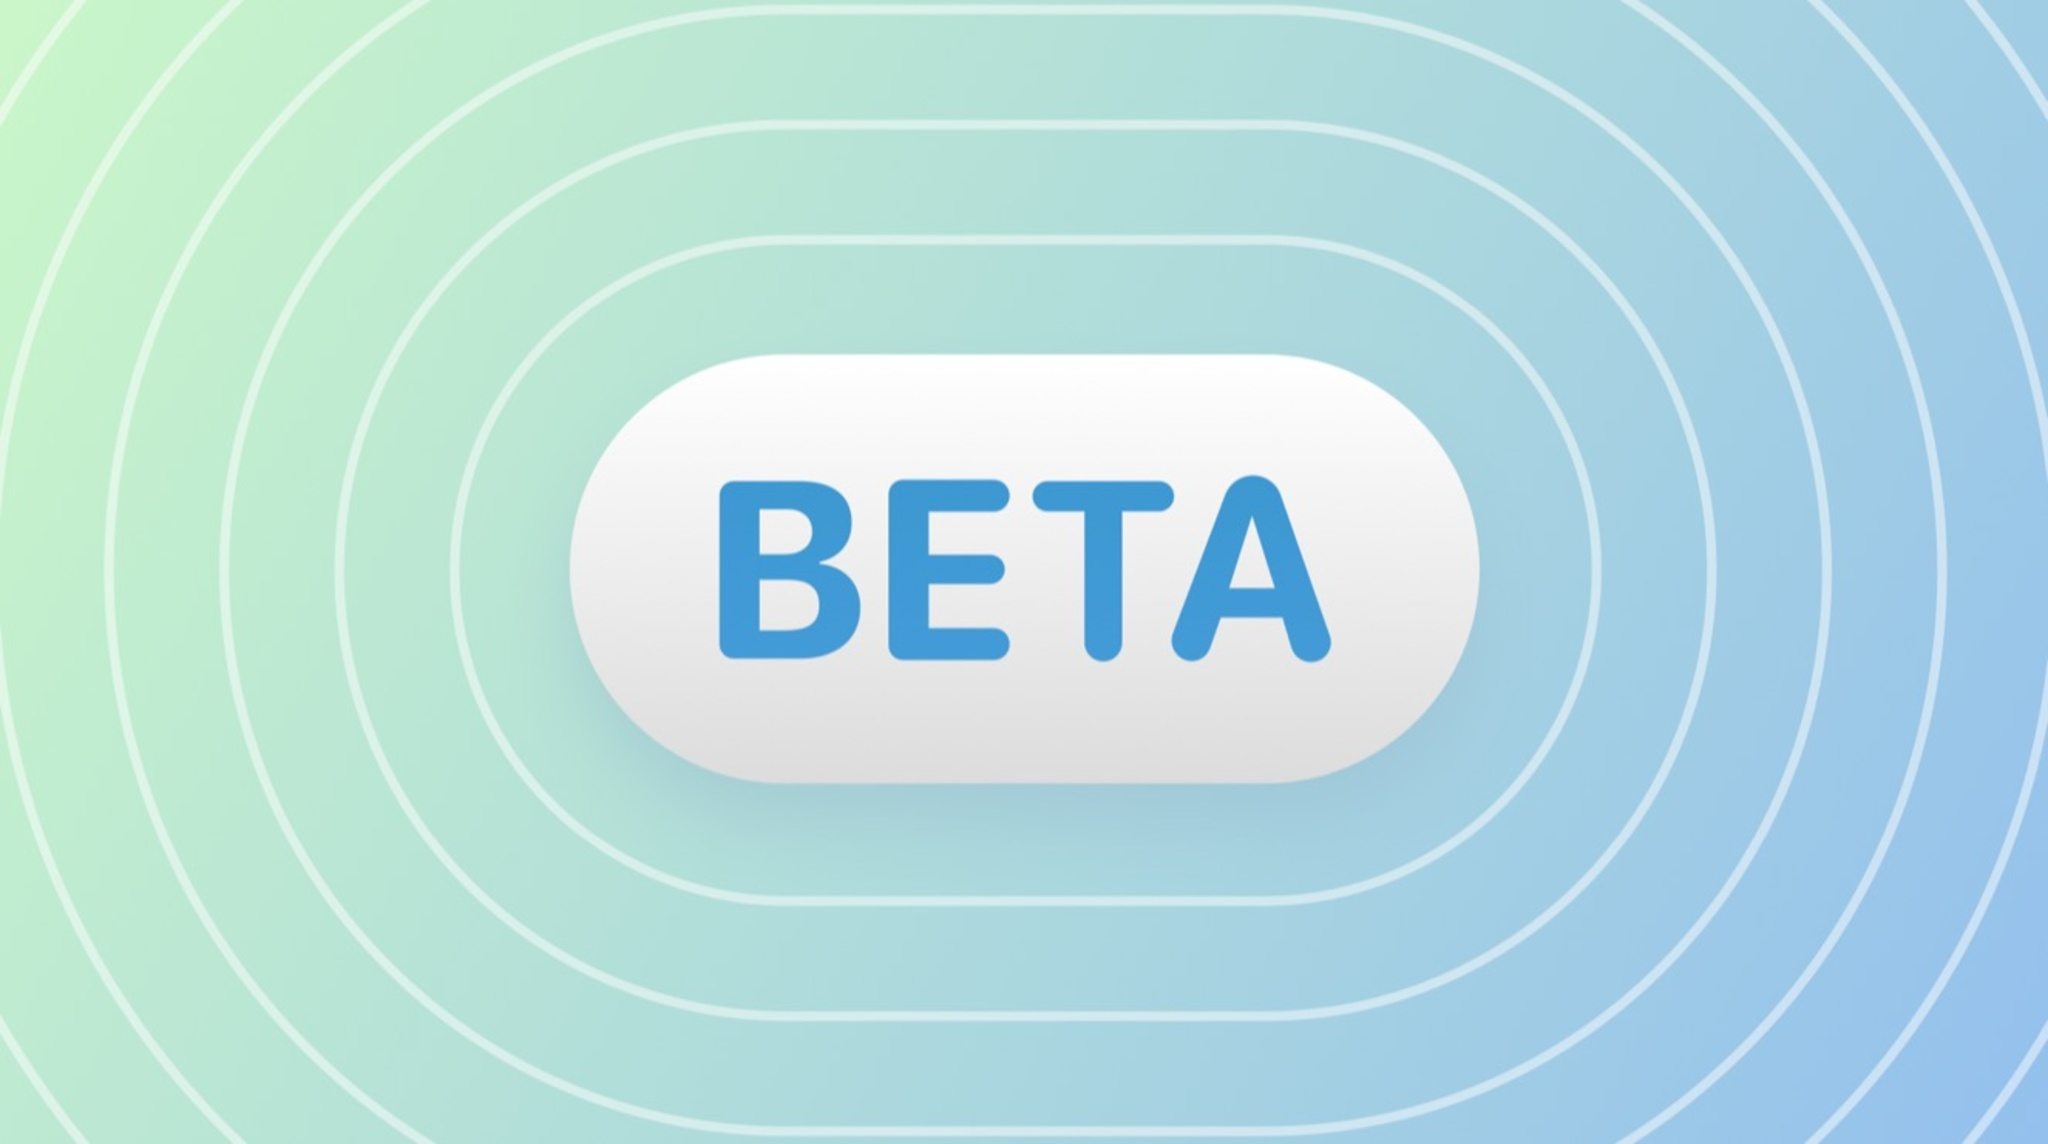 The word beta on a white button with a blue-green background